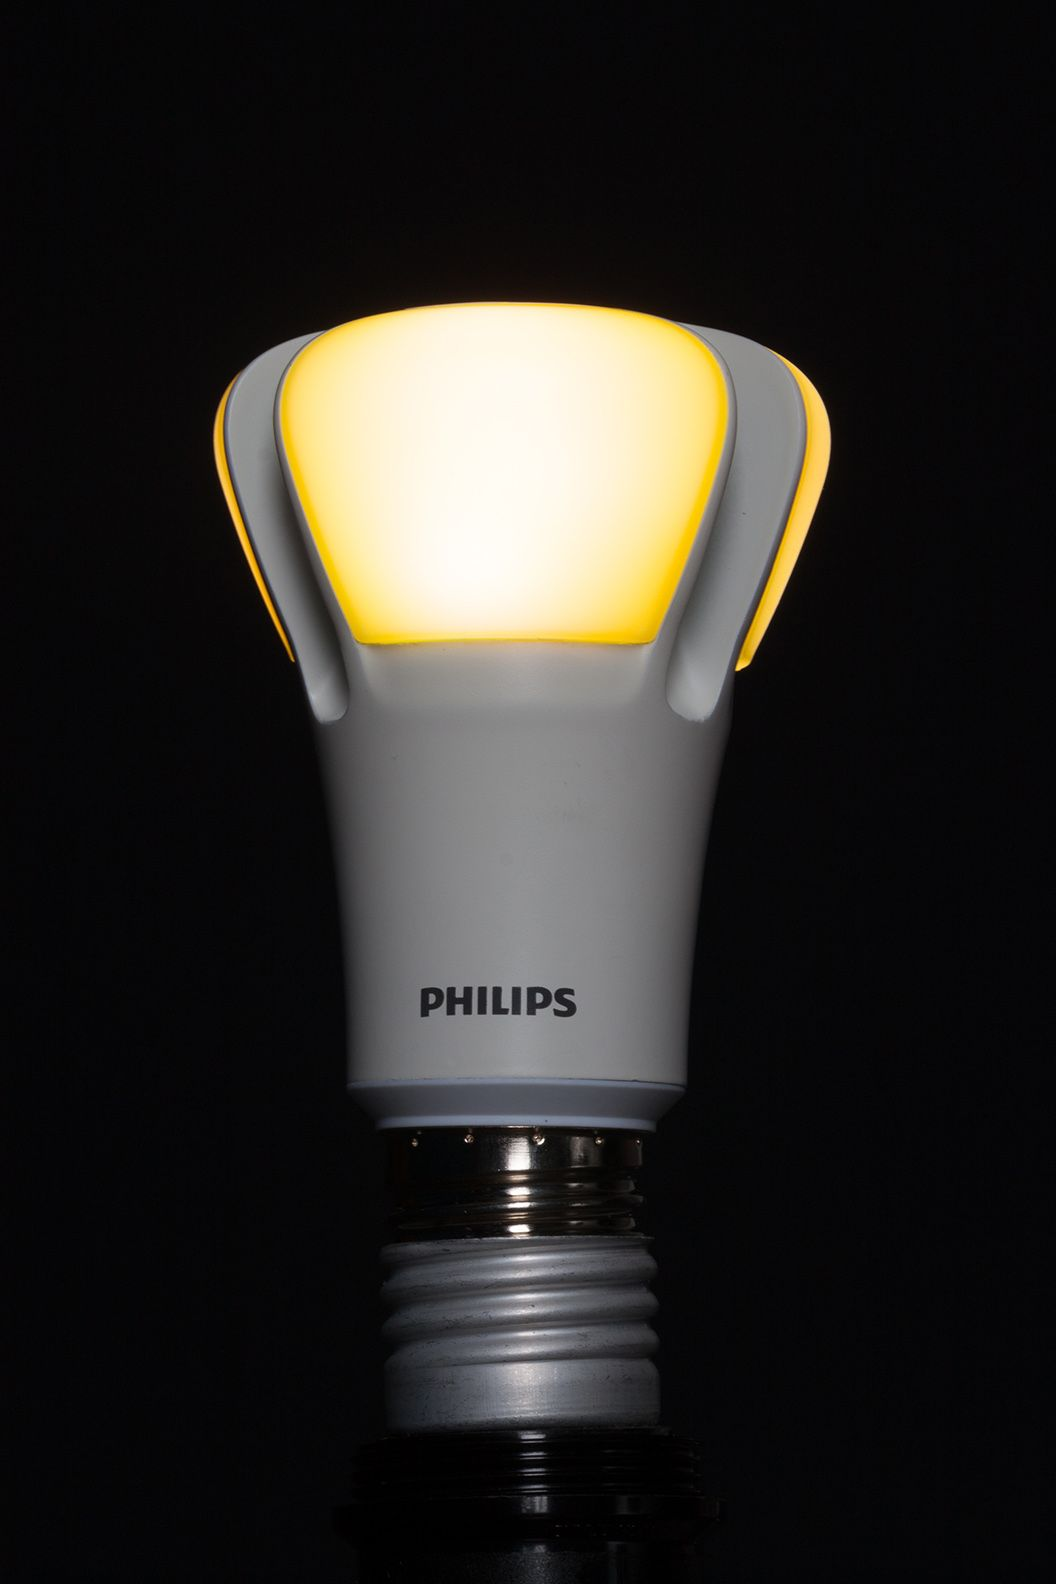 Bright Light Philips Philips A Brighter Standard Lighting Bulb Light Bulb